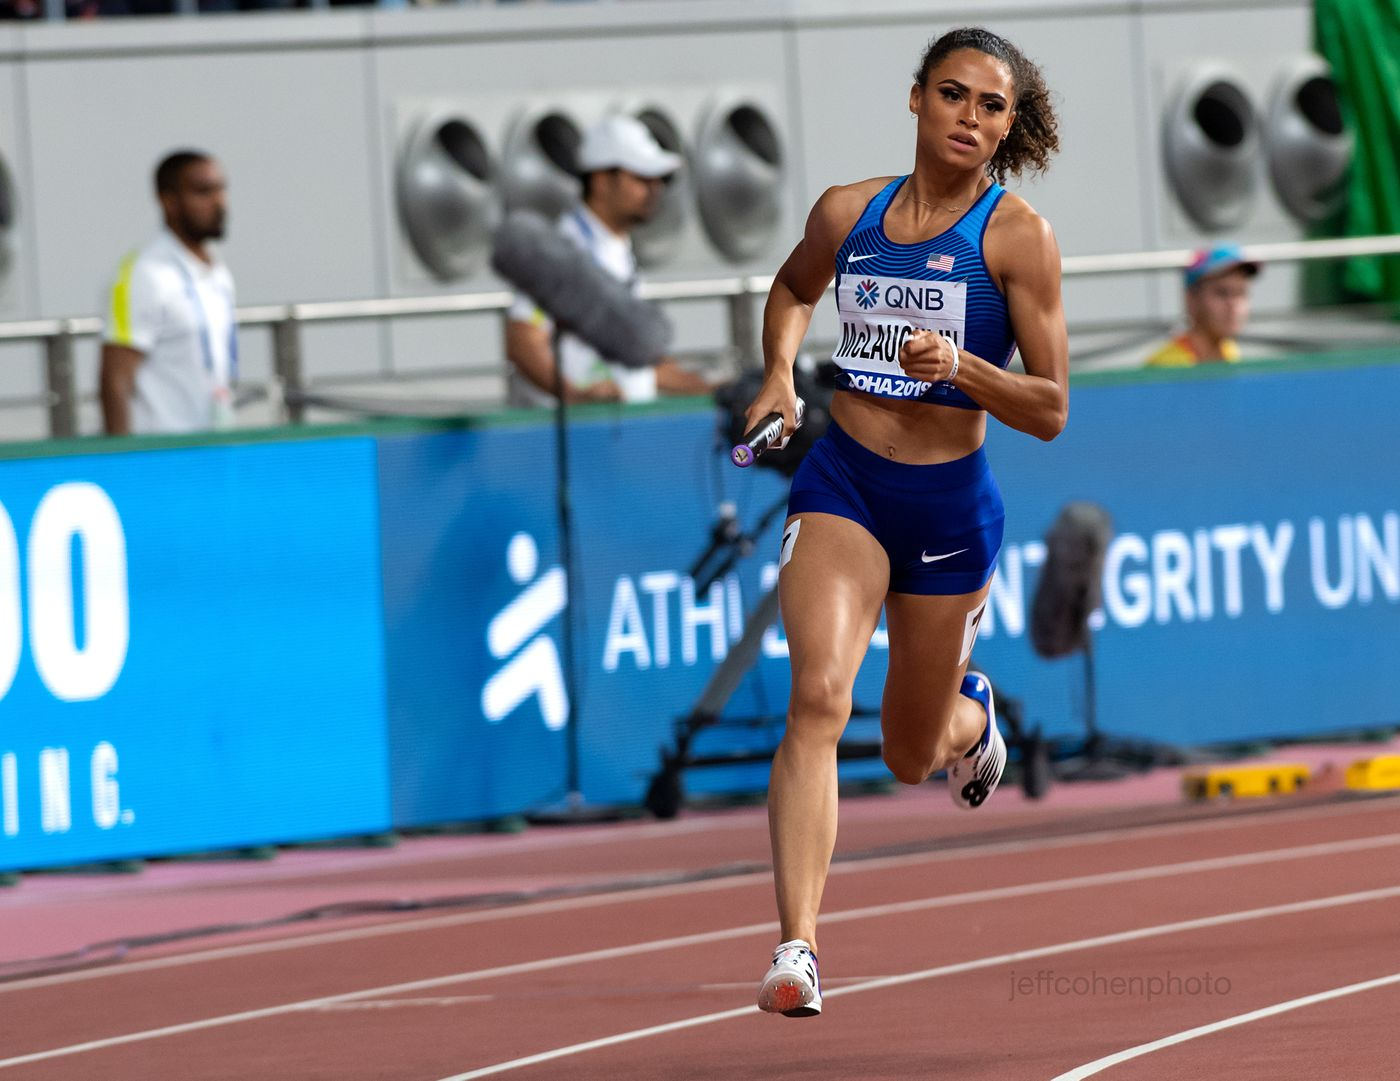 Sydney Mclaughlin, 4x400 meter relay, Team USA , gold medal. 2019 IAAF World Athletics Championships Doha, Qatar.